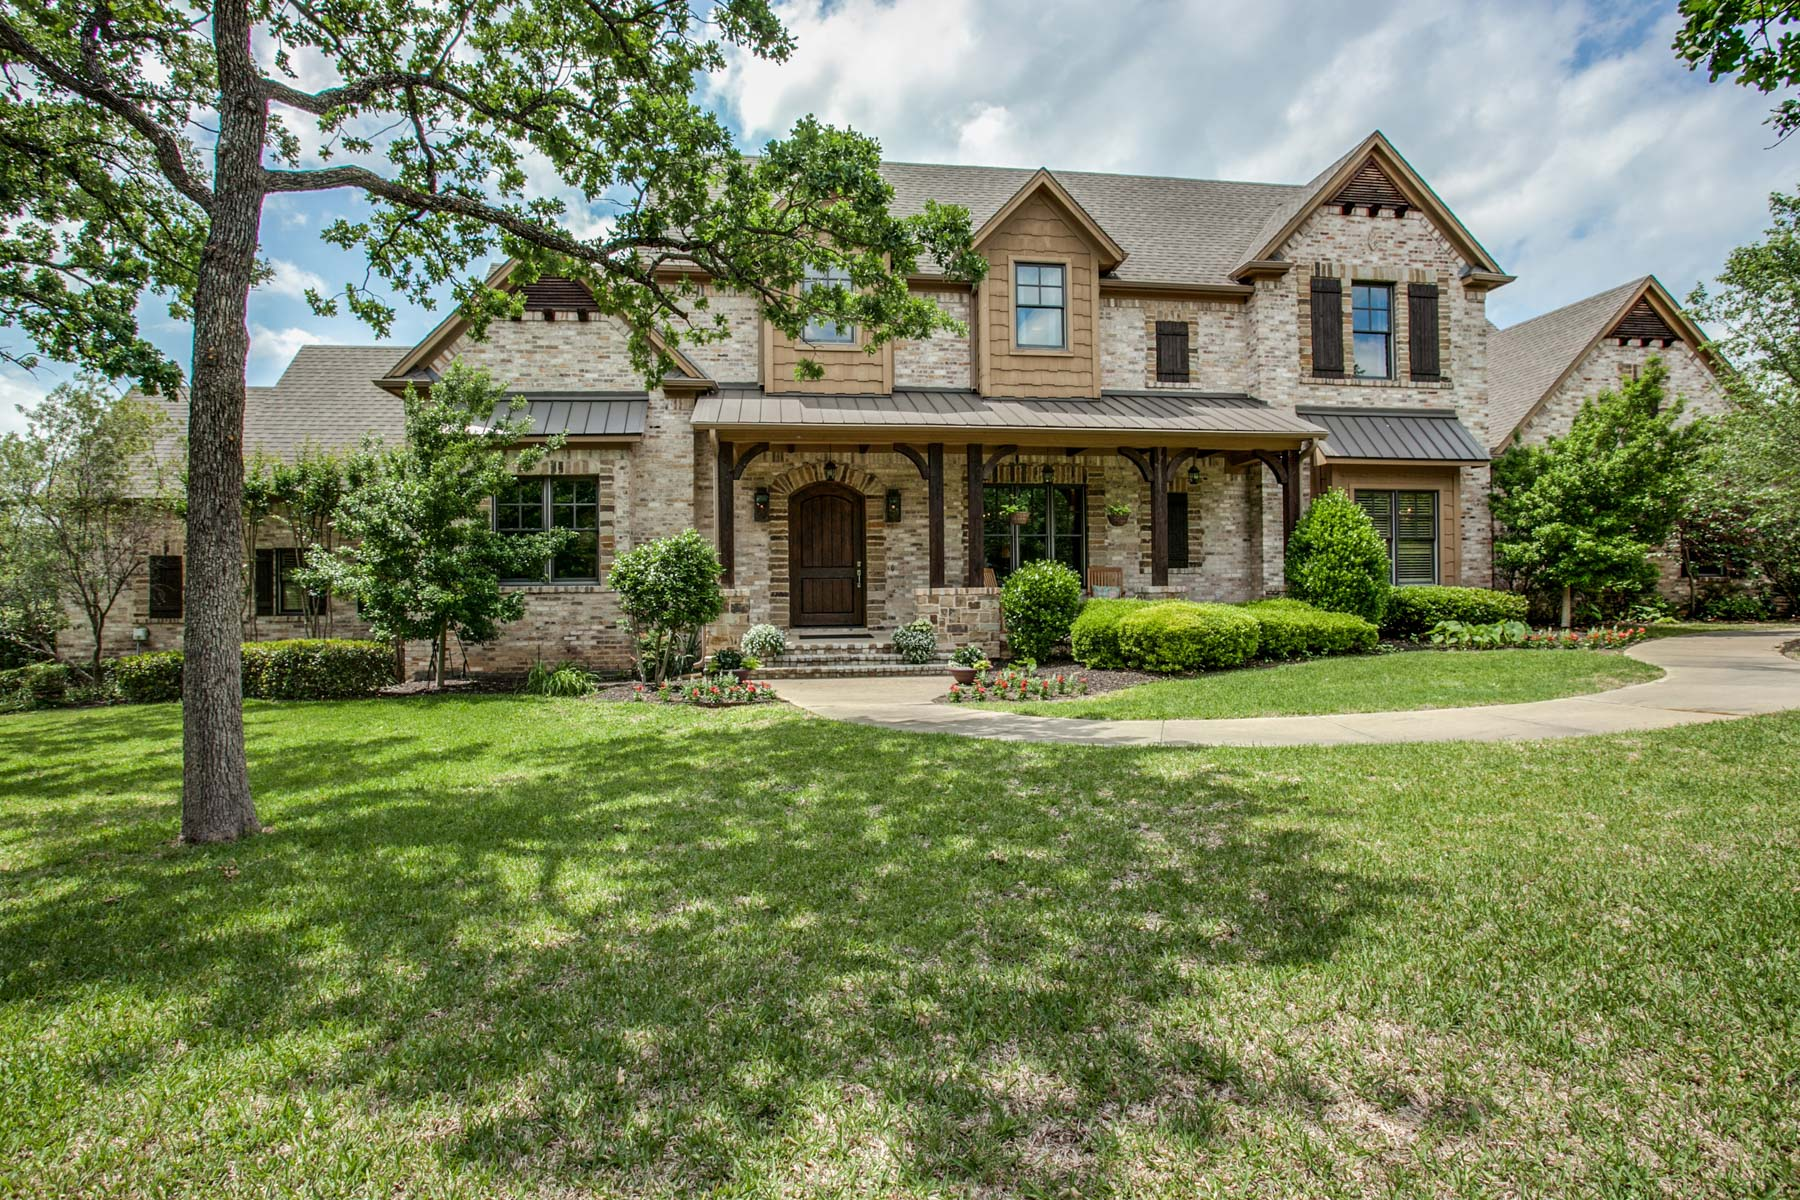 Single Family Home for Sale at 2200 N Peytonville Ave, Southlake Southlake, Texas 76092 United States